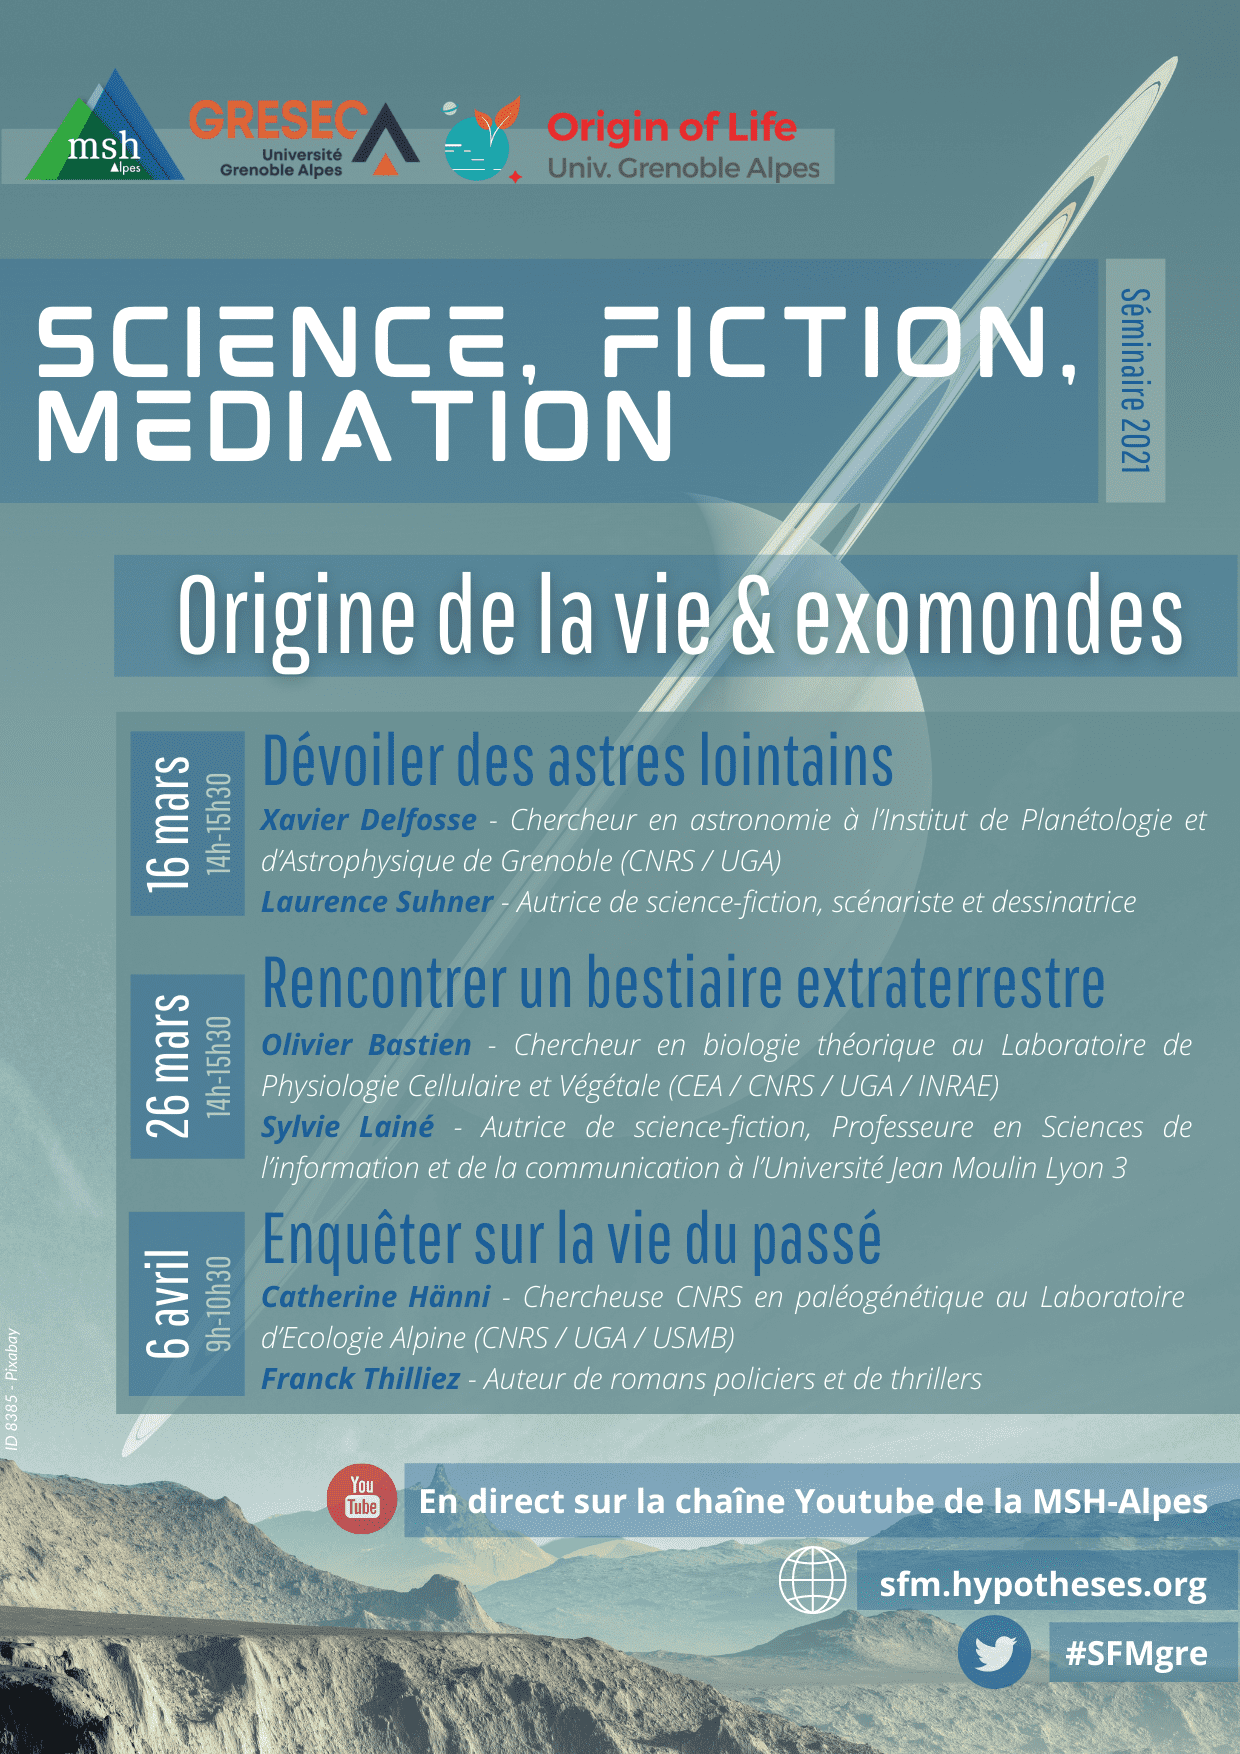 affiche_sfmgre_vf-comp.png